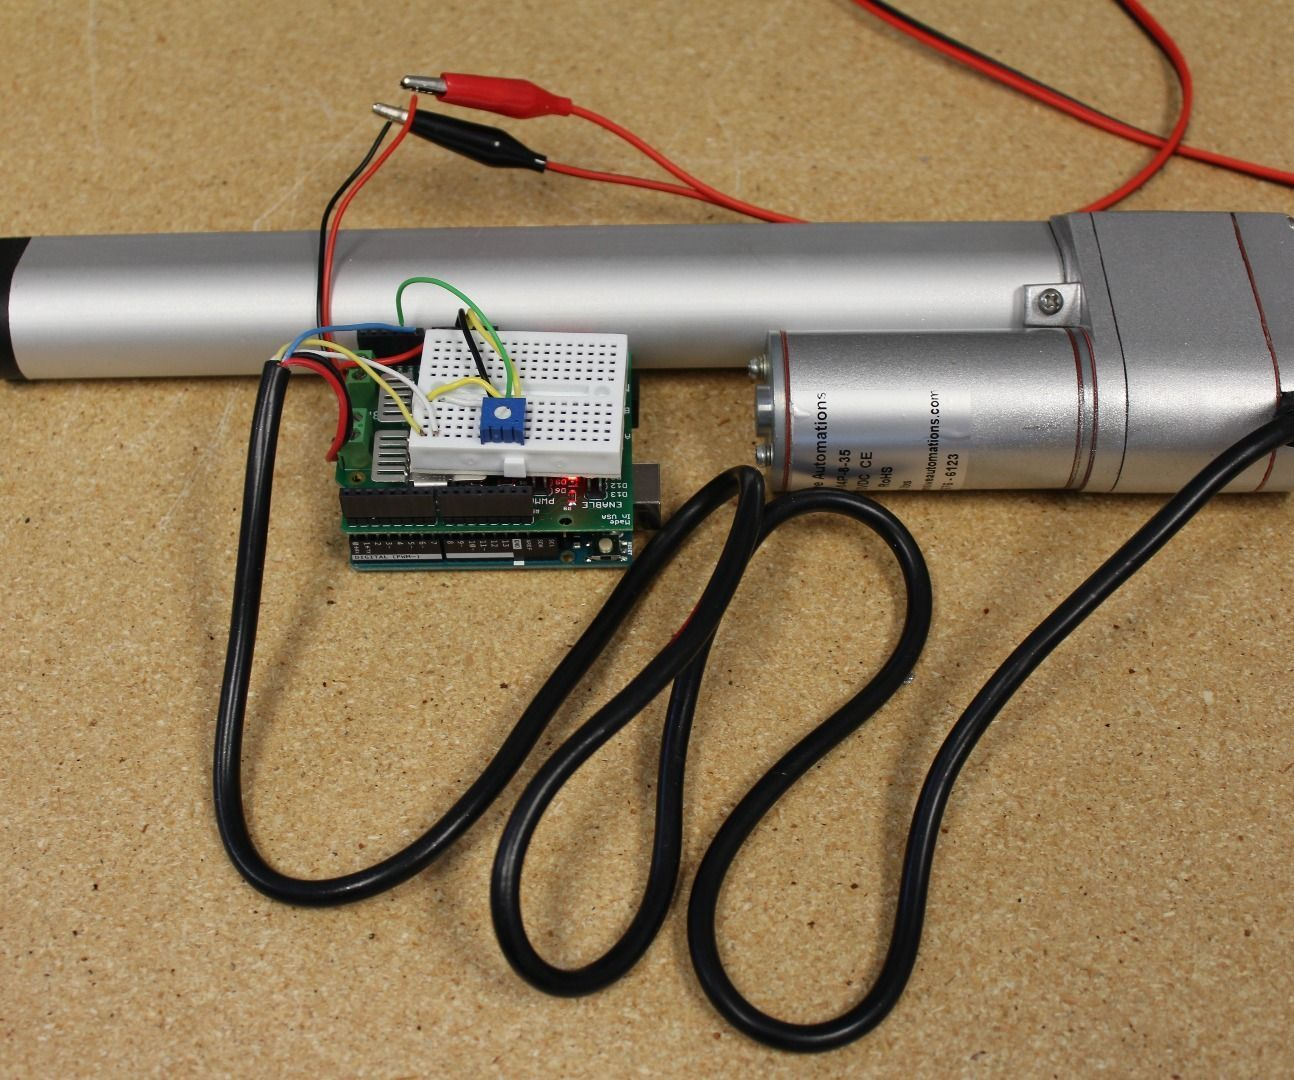 Controlling the position of an actuator with an analog